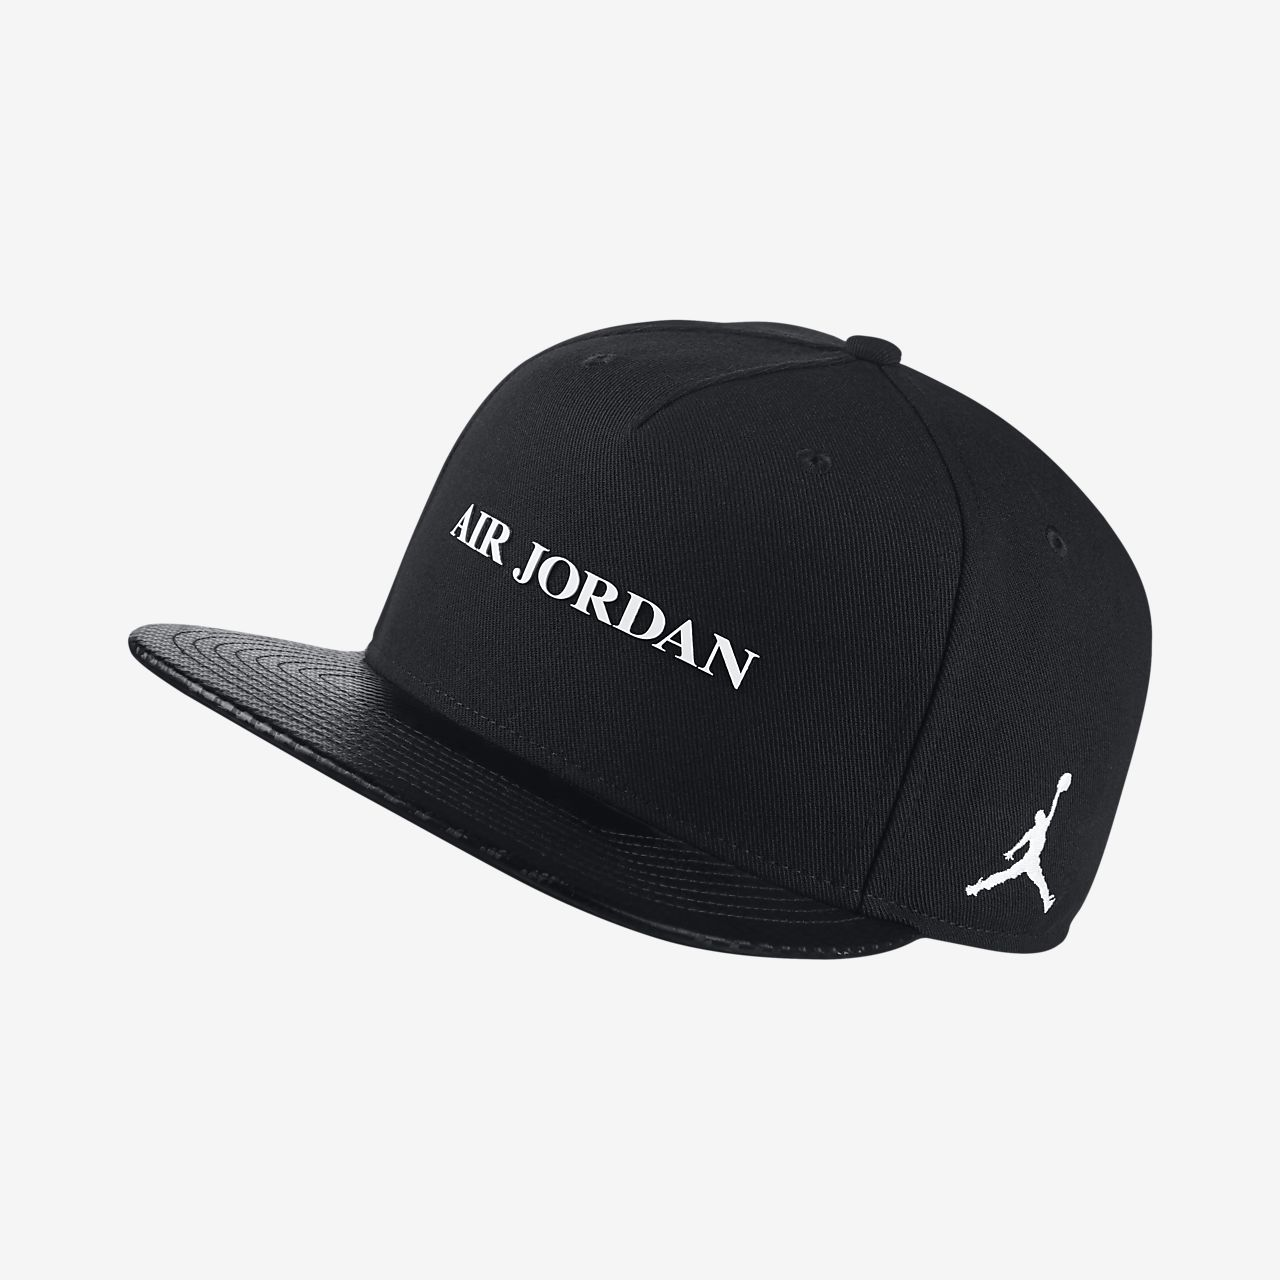 ecfe6d07d Jordan Jumpman Pro AJ 10 Adjustable Hat